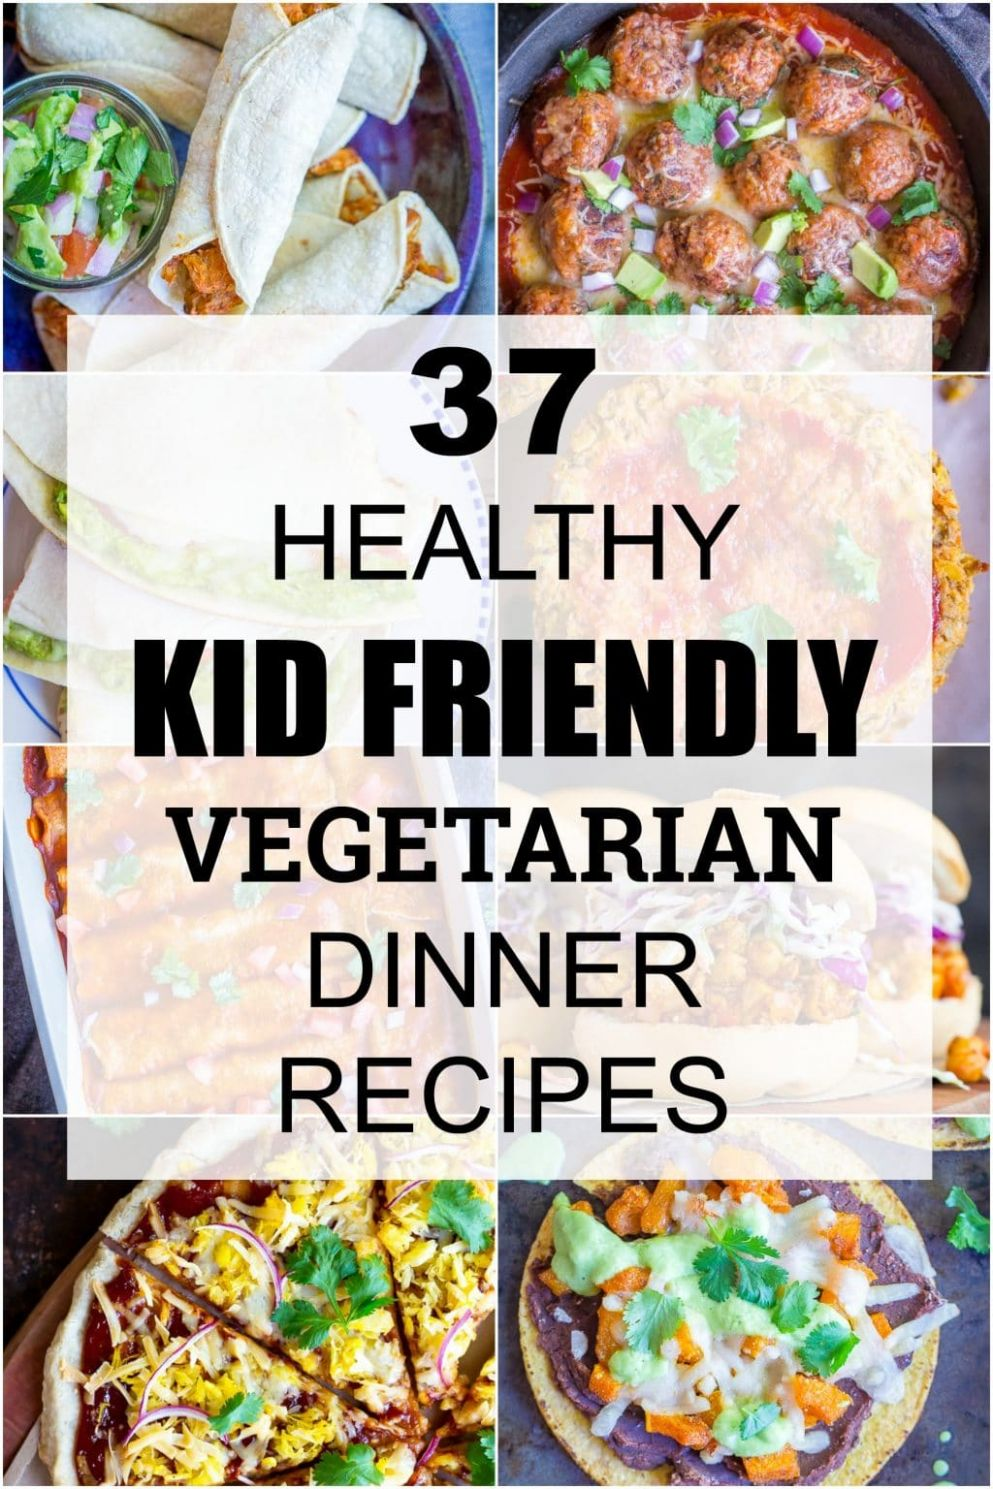 11 Healthy Kid Friendly Vegetarian Dinner Recipes - She Likes Food - Healthy Recipes Kid Approved